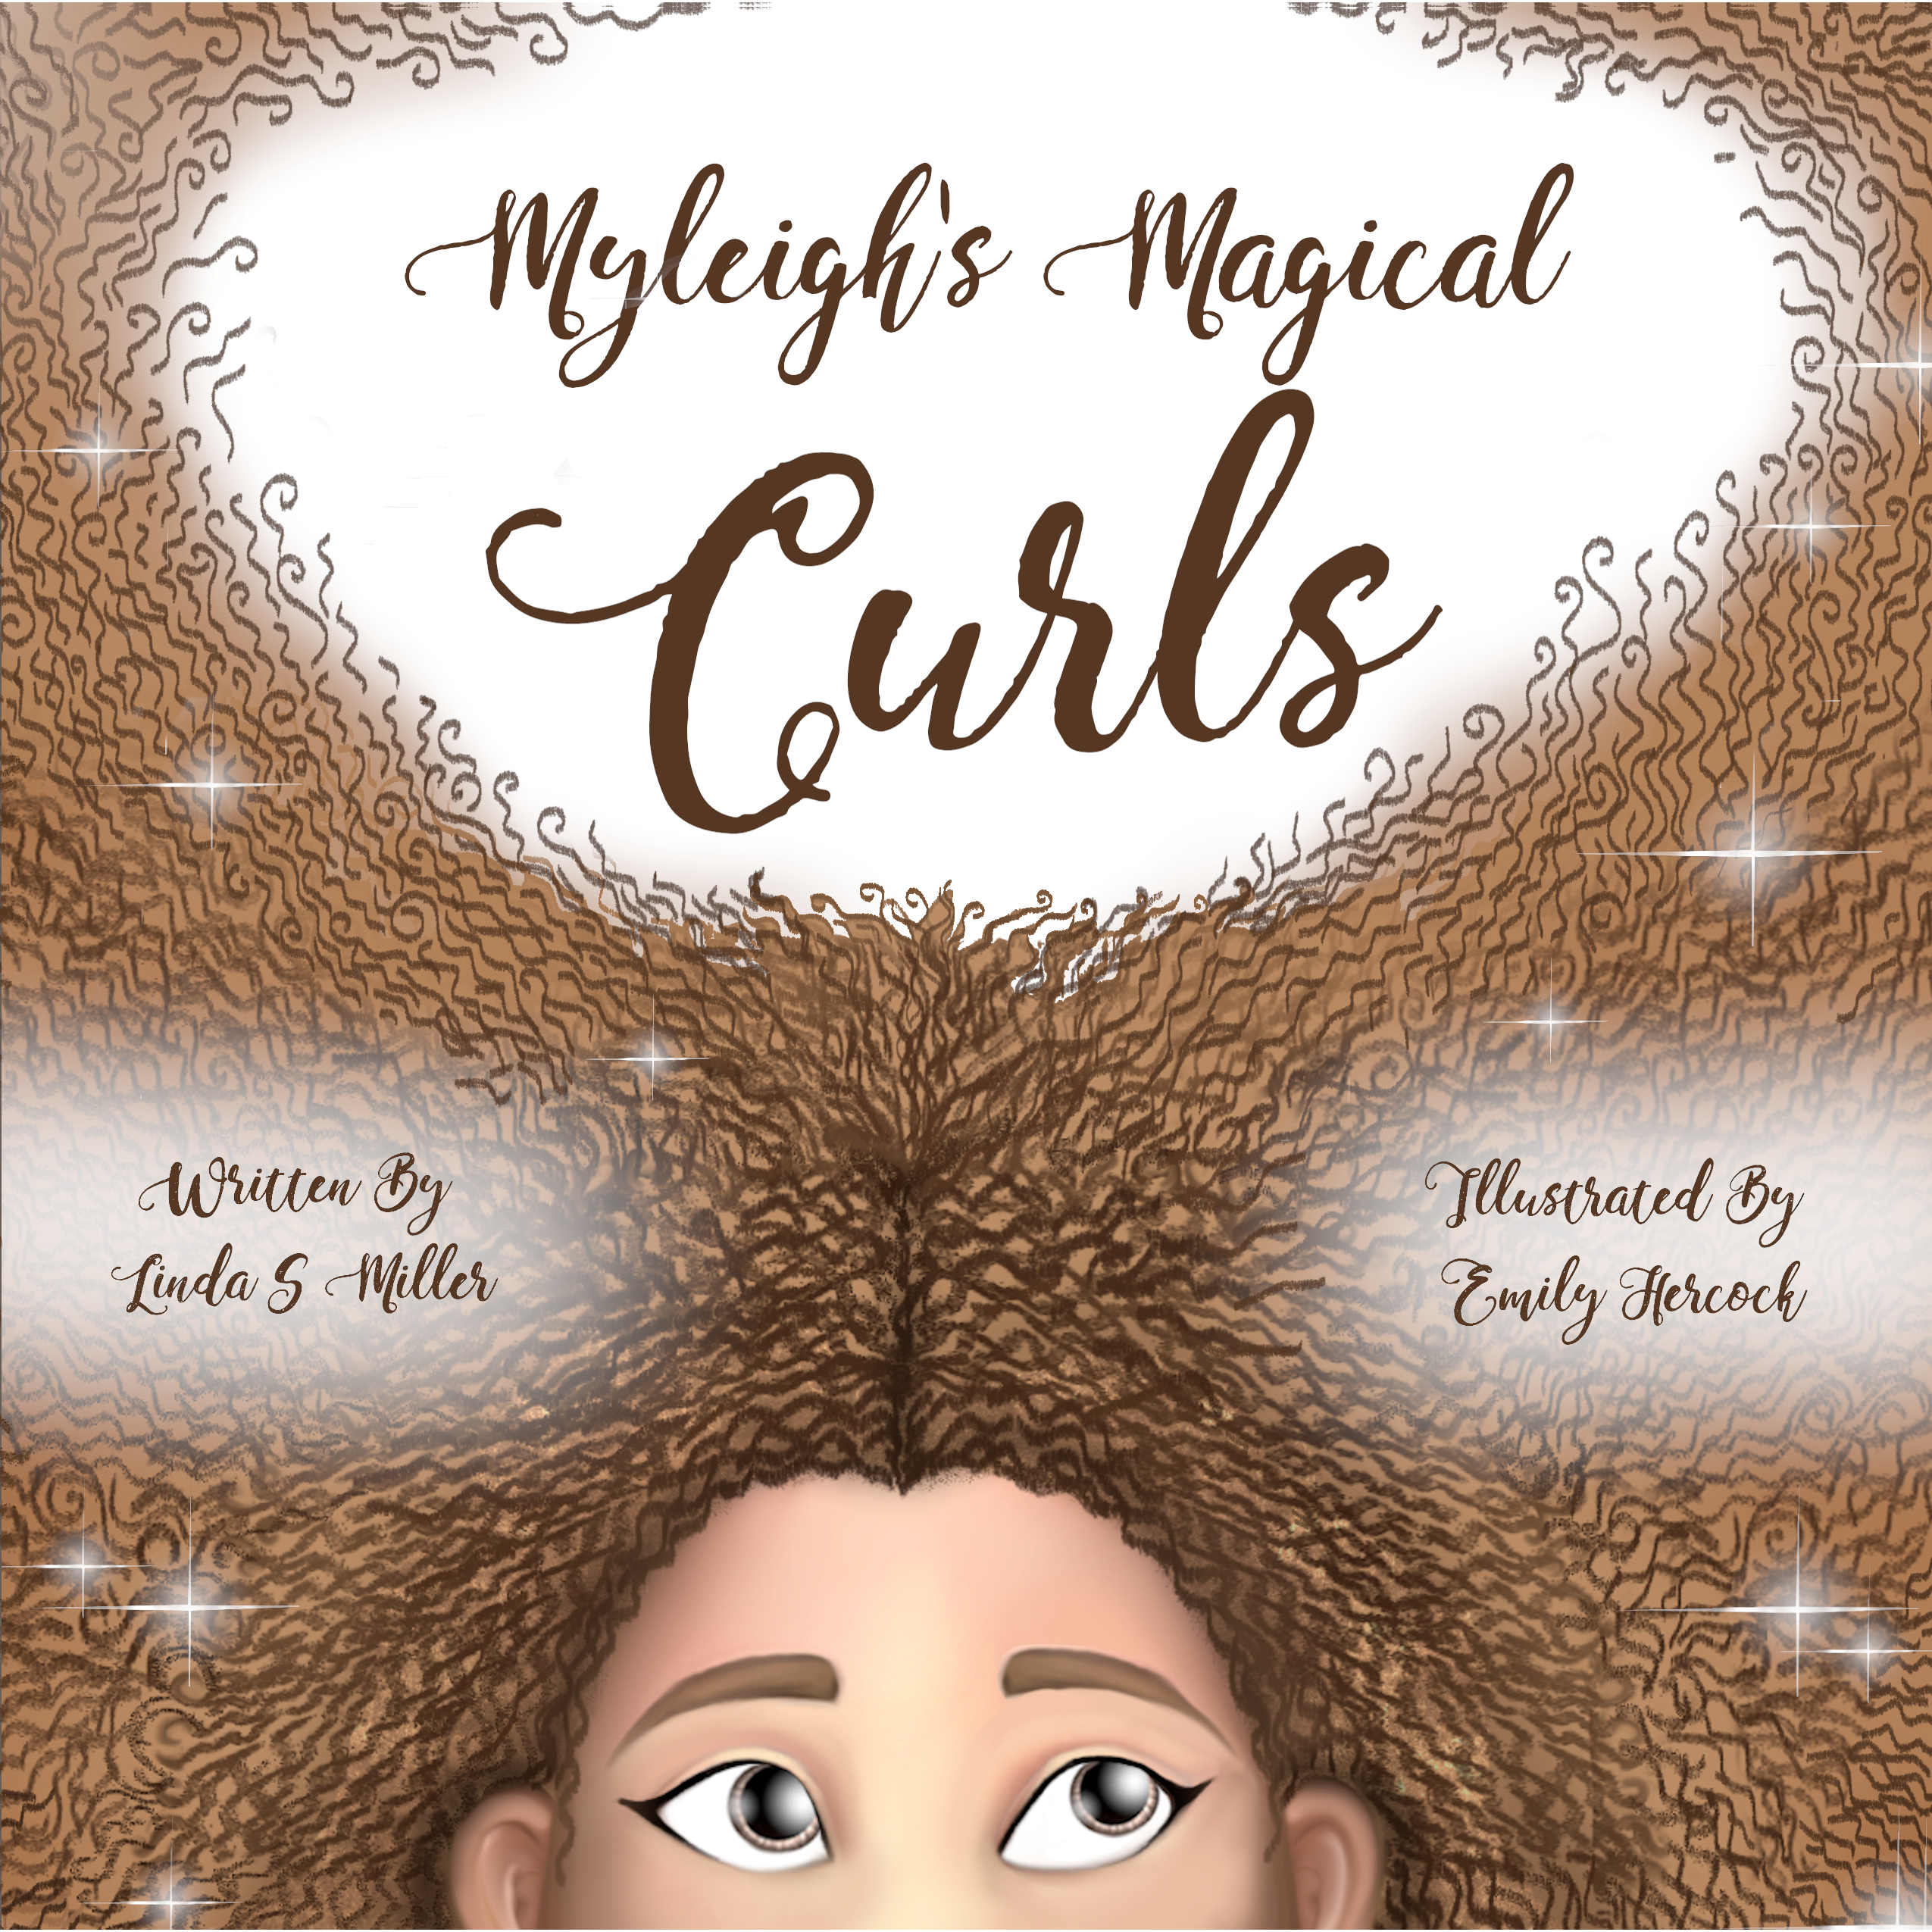 Myleighs Magical Curls